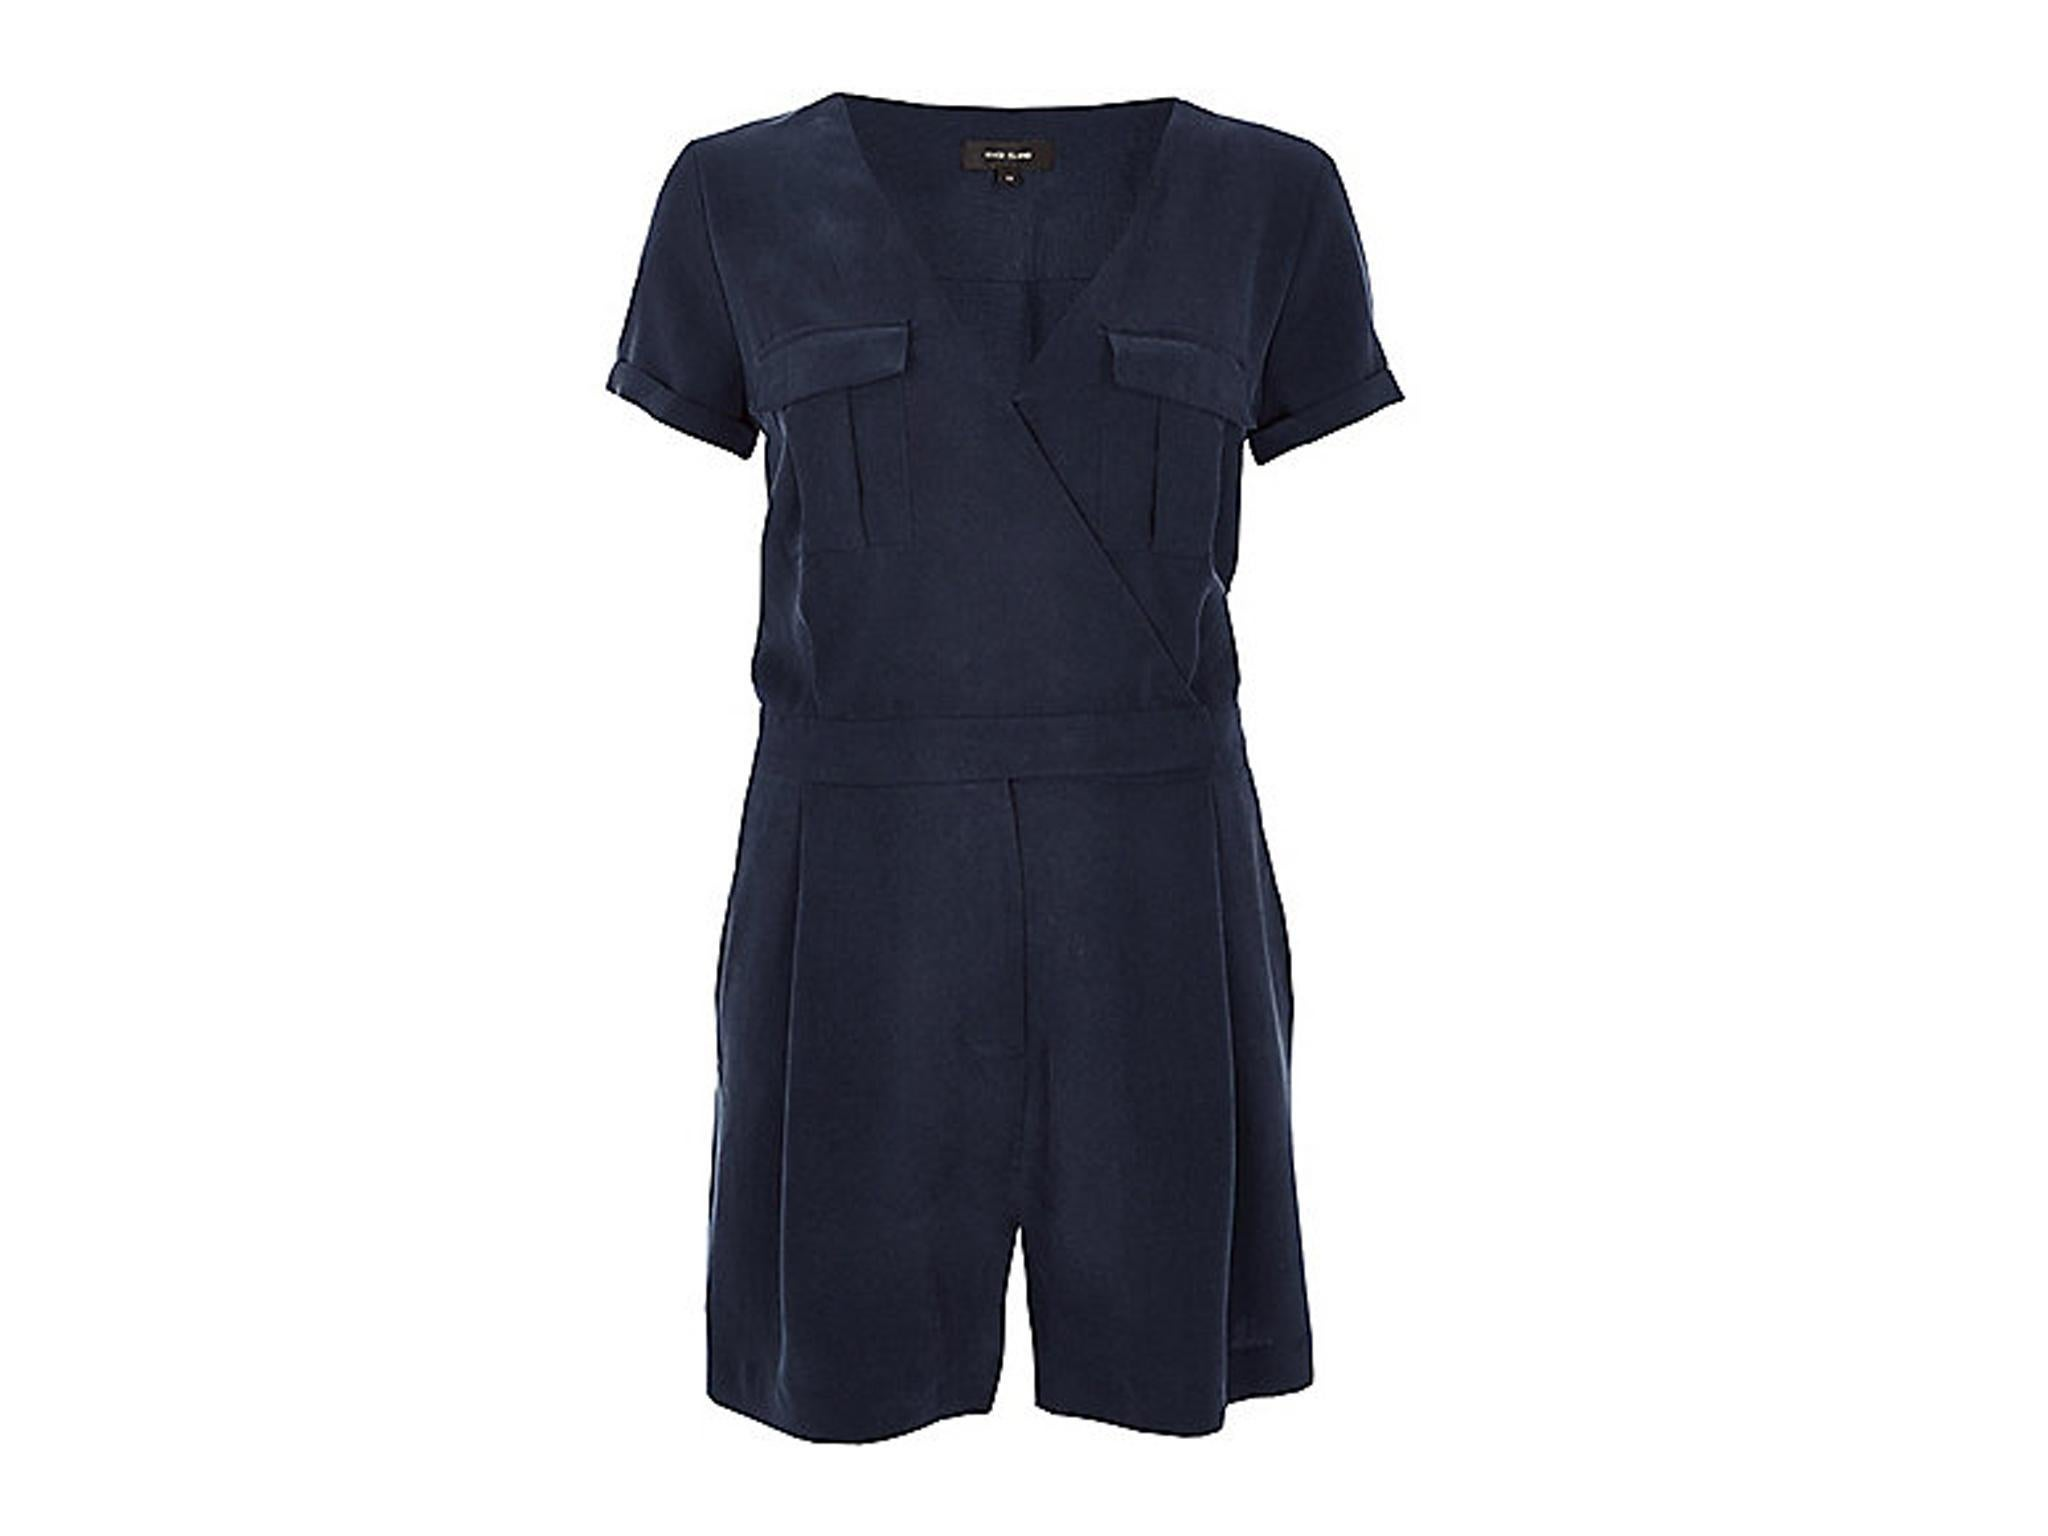 d3178e162 10 best playsuits | The Independent